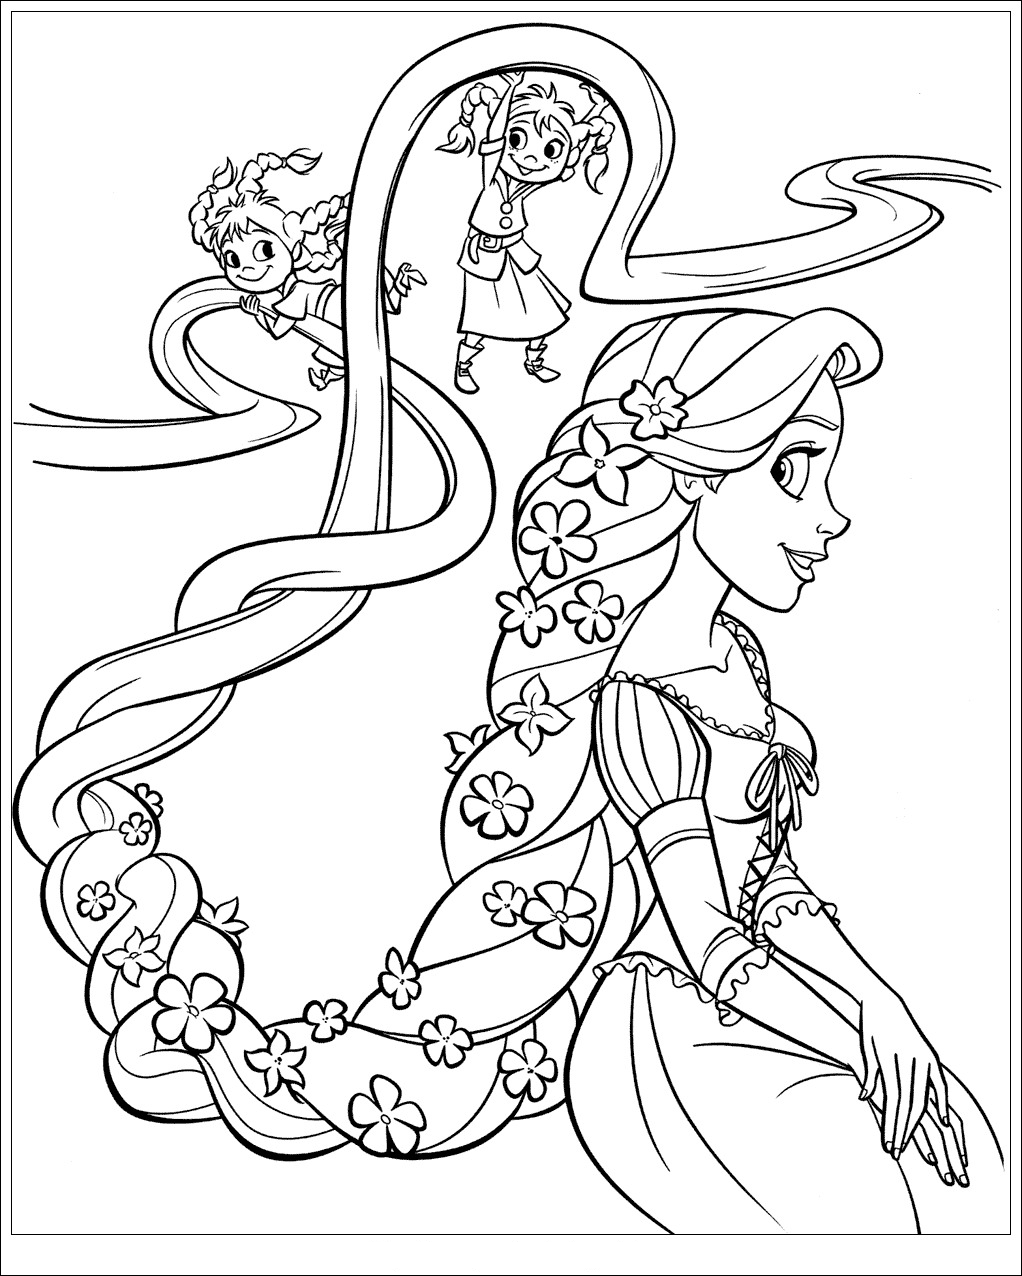 disney rapunzel coloring pages disney princess coloring pages rapunzel in 2020 disney pages coloring rapunzel disney